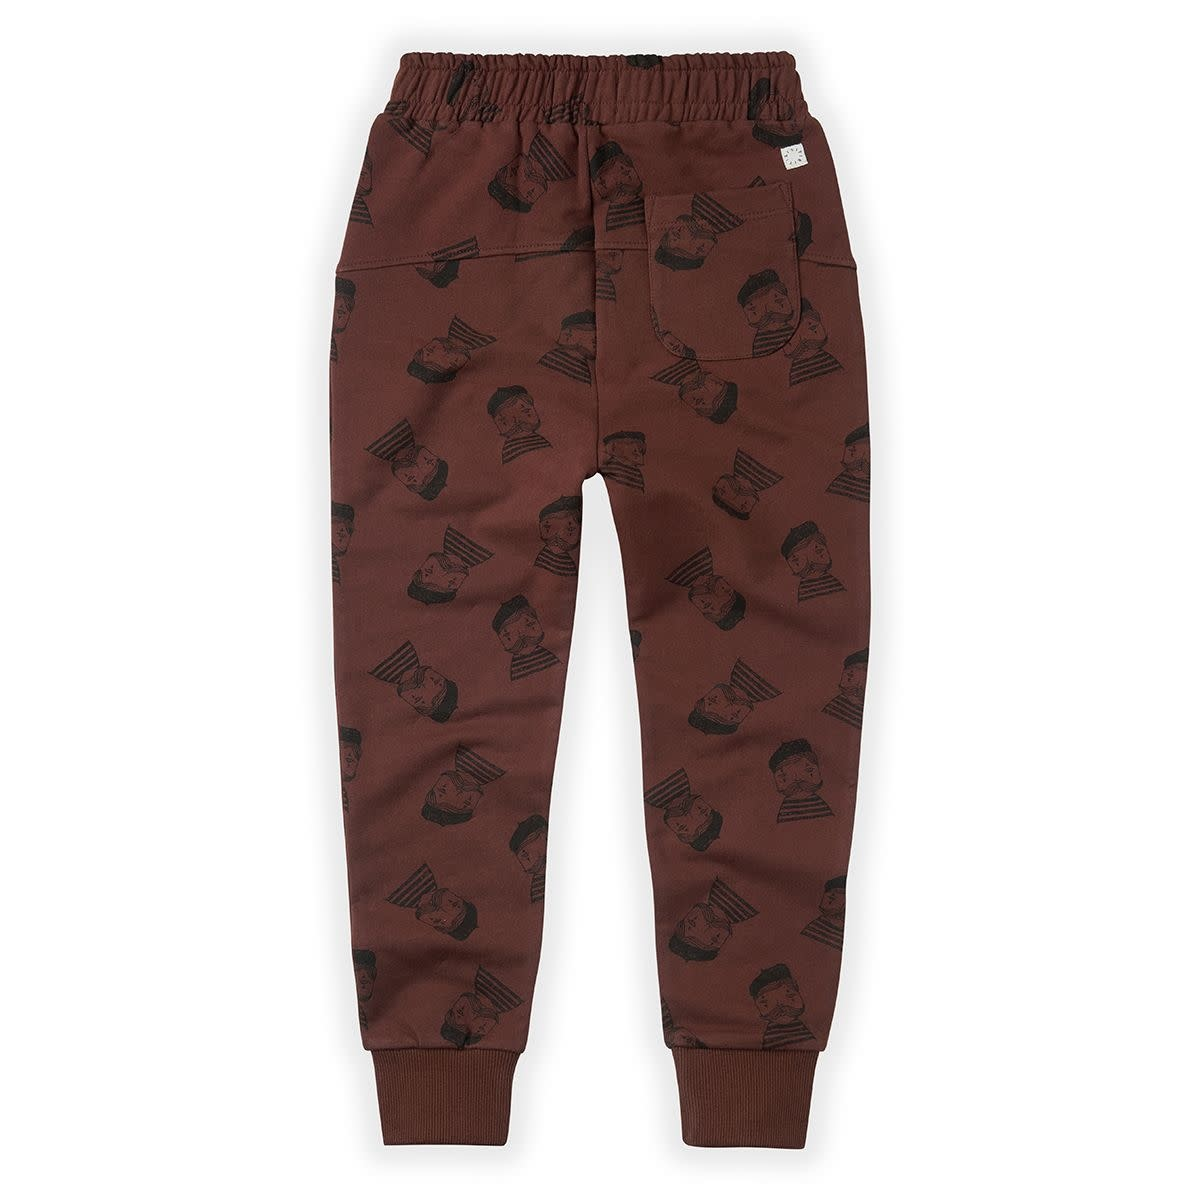 Sproet & Sprout Sproet&Sprout - Sweatpants pierrot aop chocolate